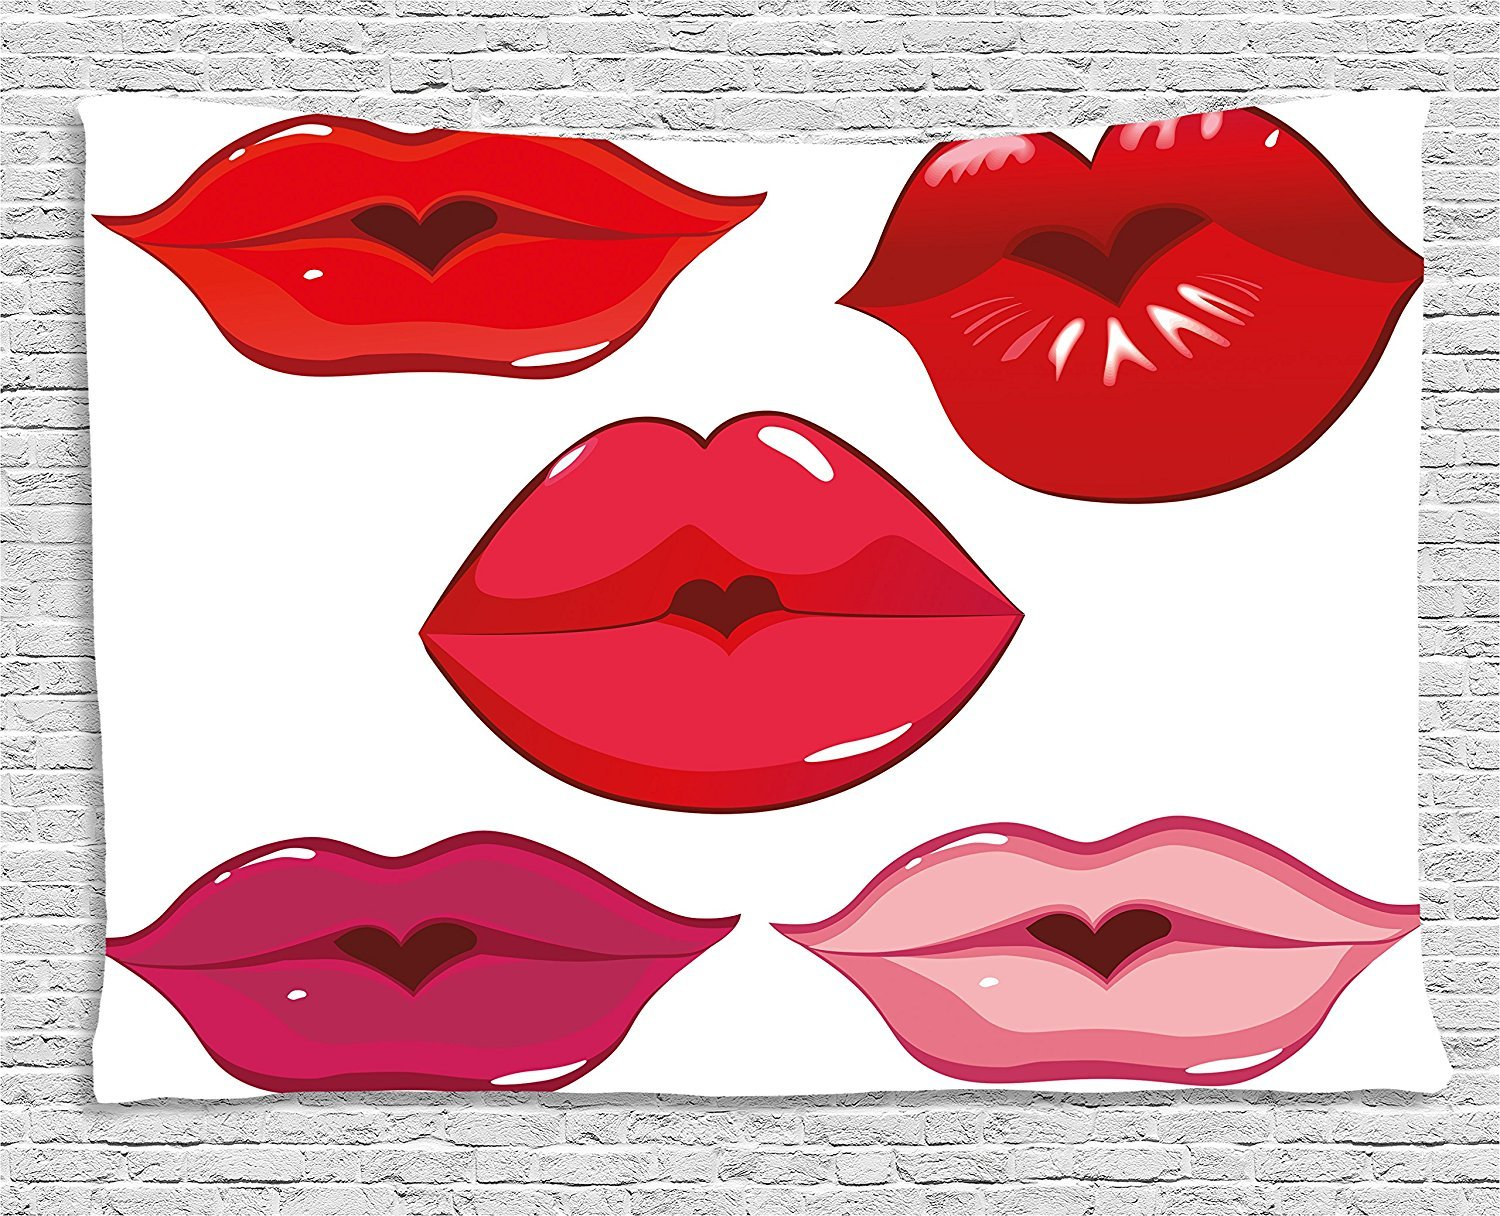 Kiss Tapestry, Woman Sexy Lip Heart Shape Kiss Female Valentine Affection Amour Make Up, Wall Hanging for Bedroom Living Room Dorm, 80 W X 60 L Inches, Red Rose Pink White